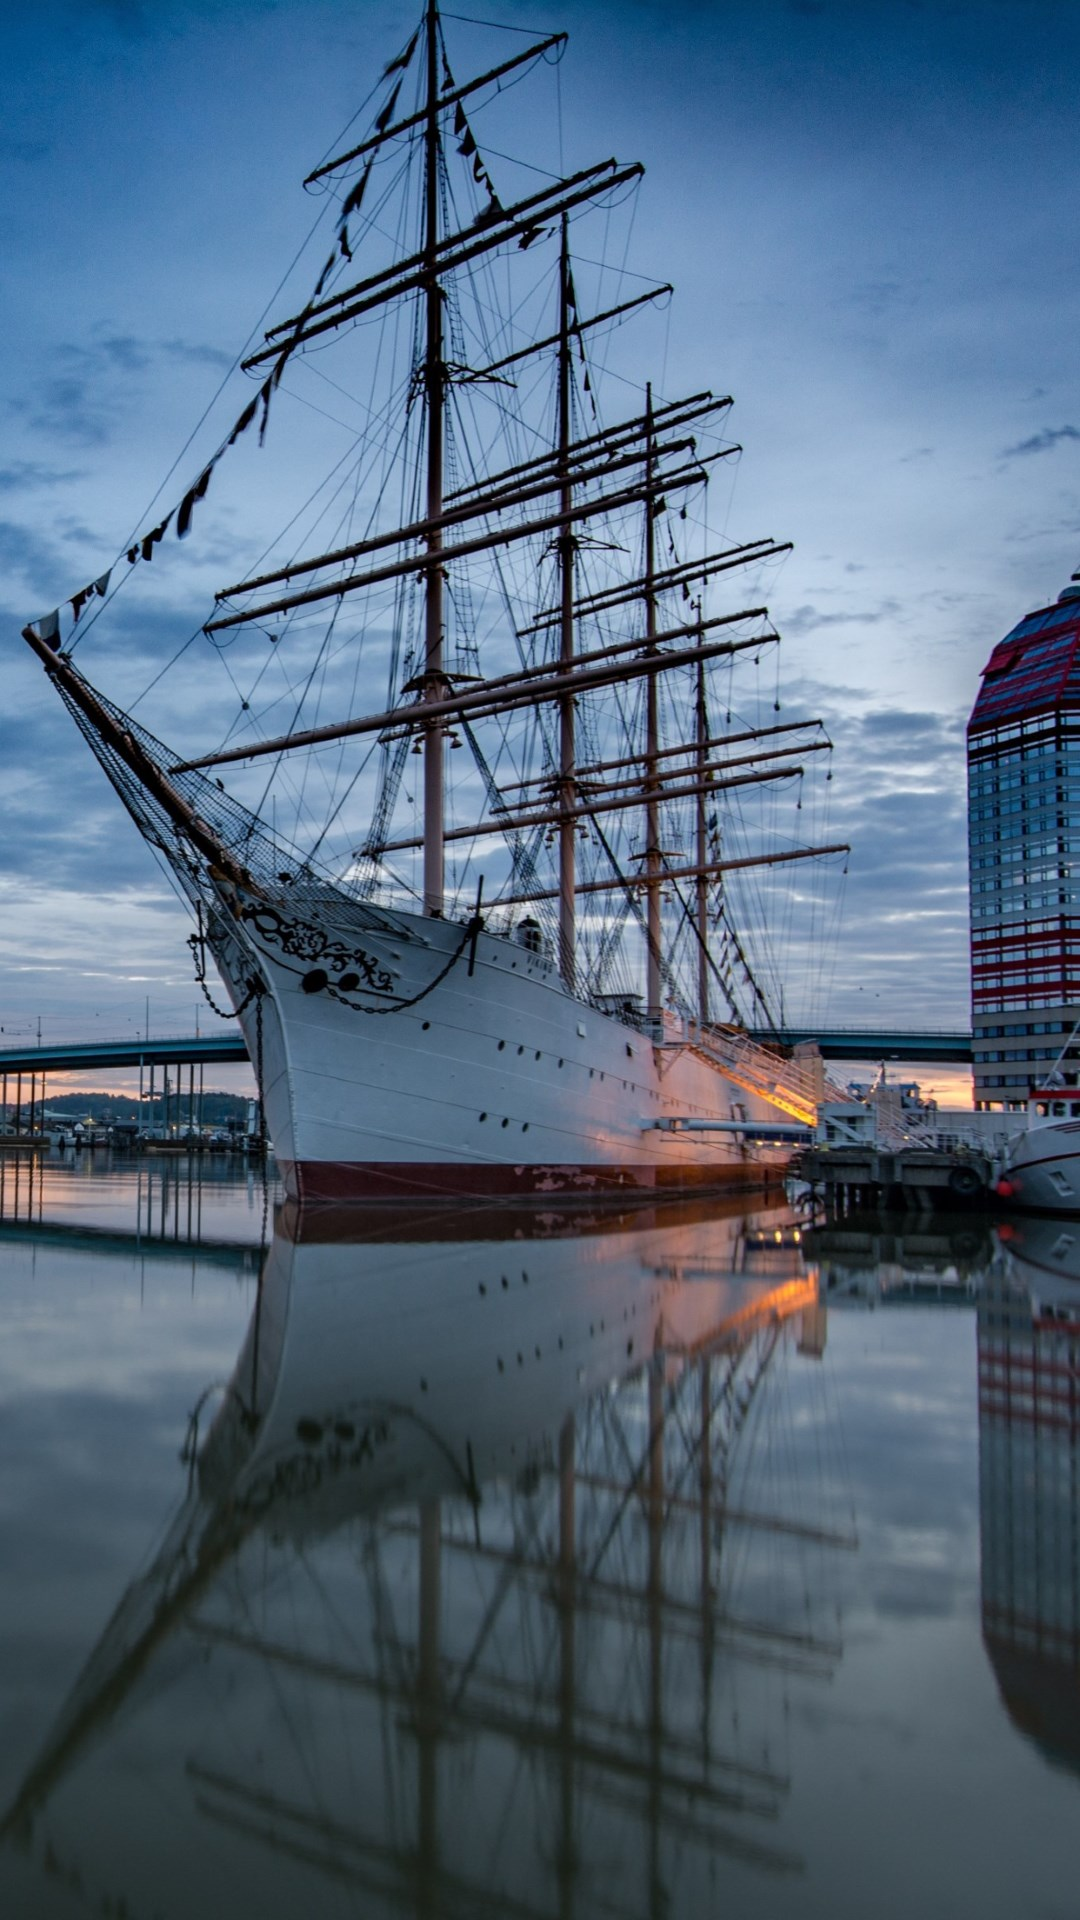 Historic wooden sailing ship in Gothenburg Harbour | 1080x1920 wallpaper